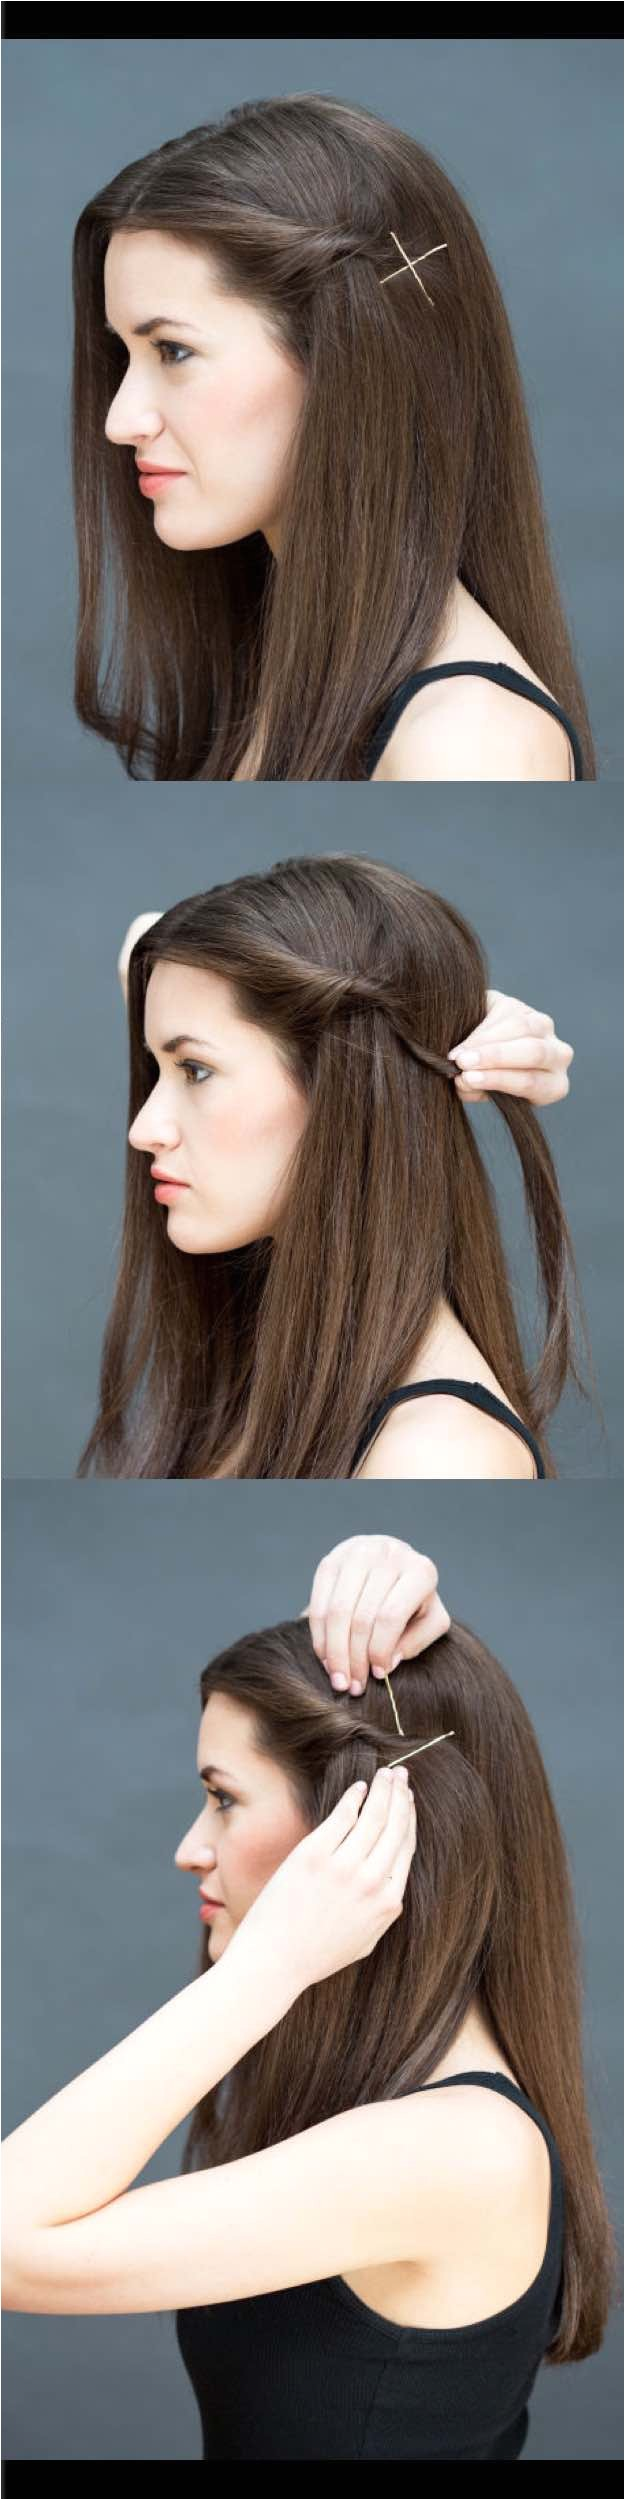 Easy Steps to Make Hairstyles 33 Quick and Easy Hairstyles for Straight Hair the Goddess